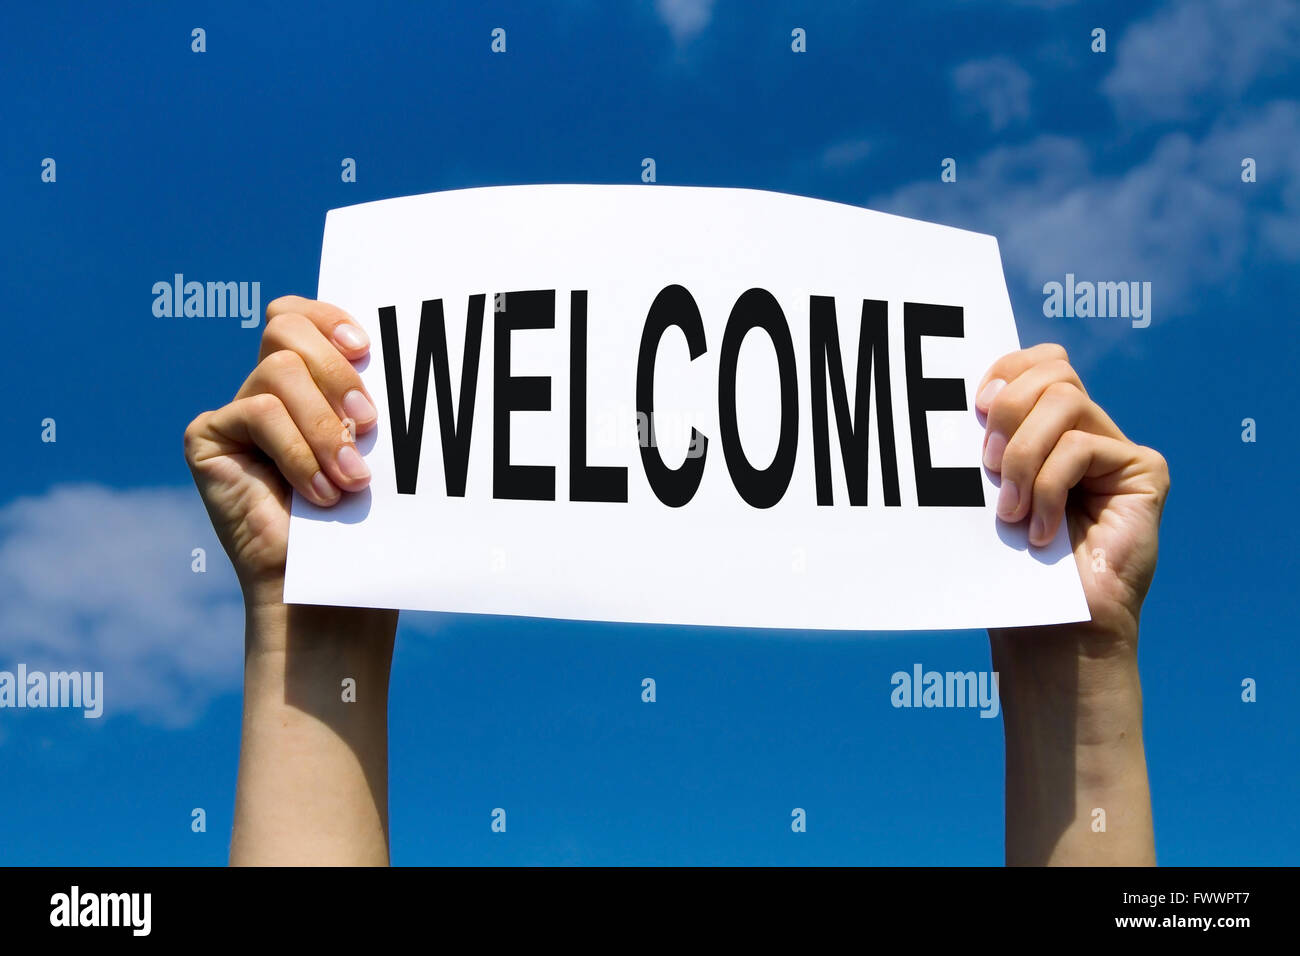 welcome concept, hands holding paper sign on blue sky - Stock Image